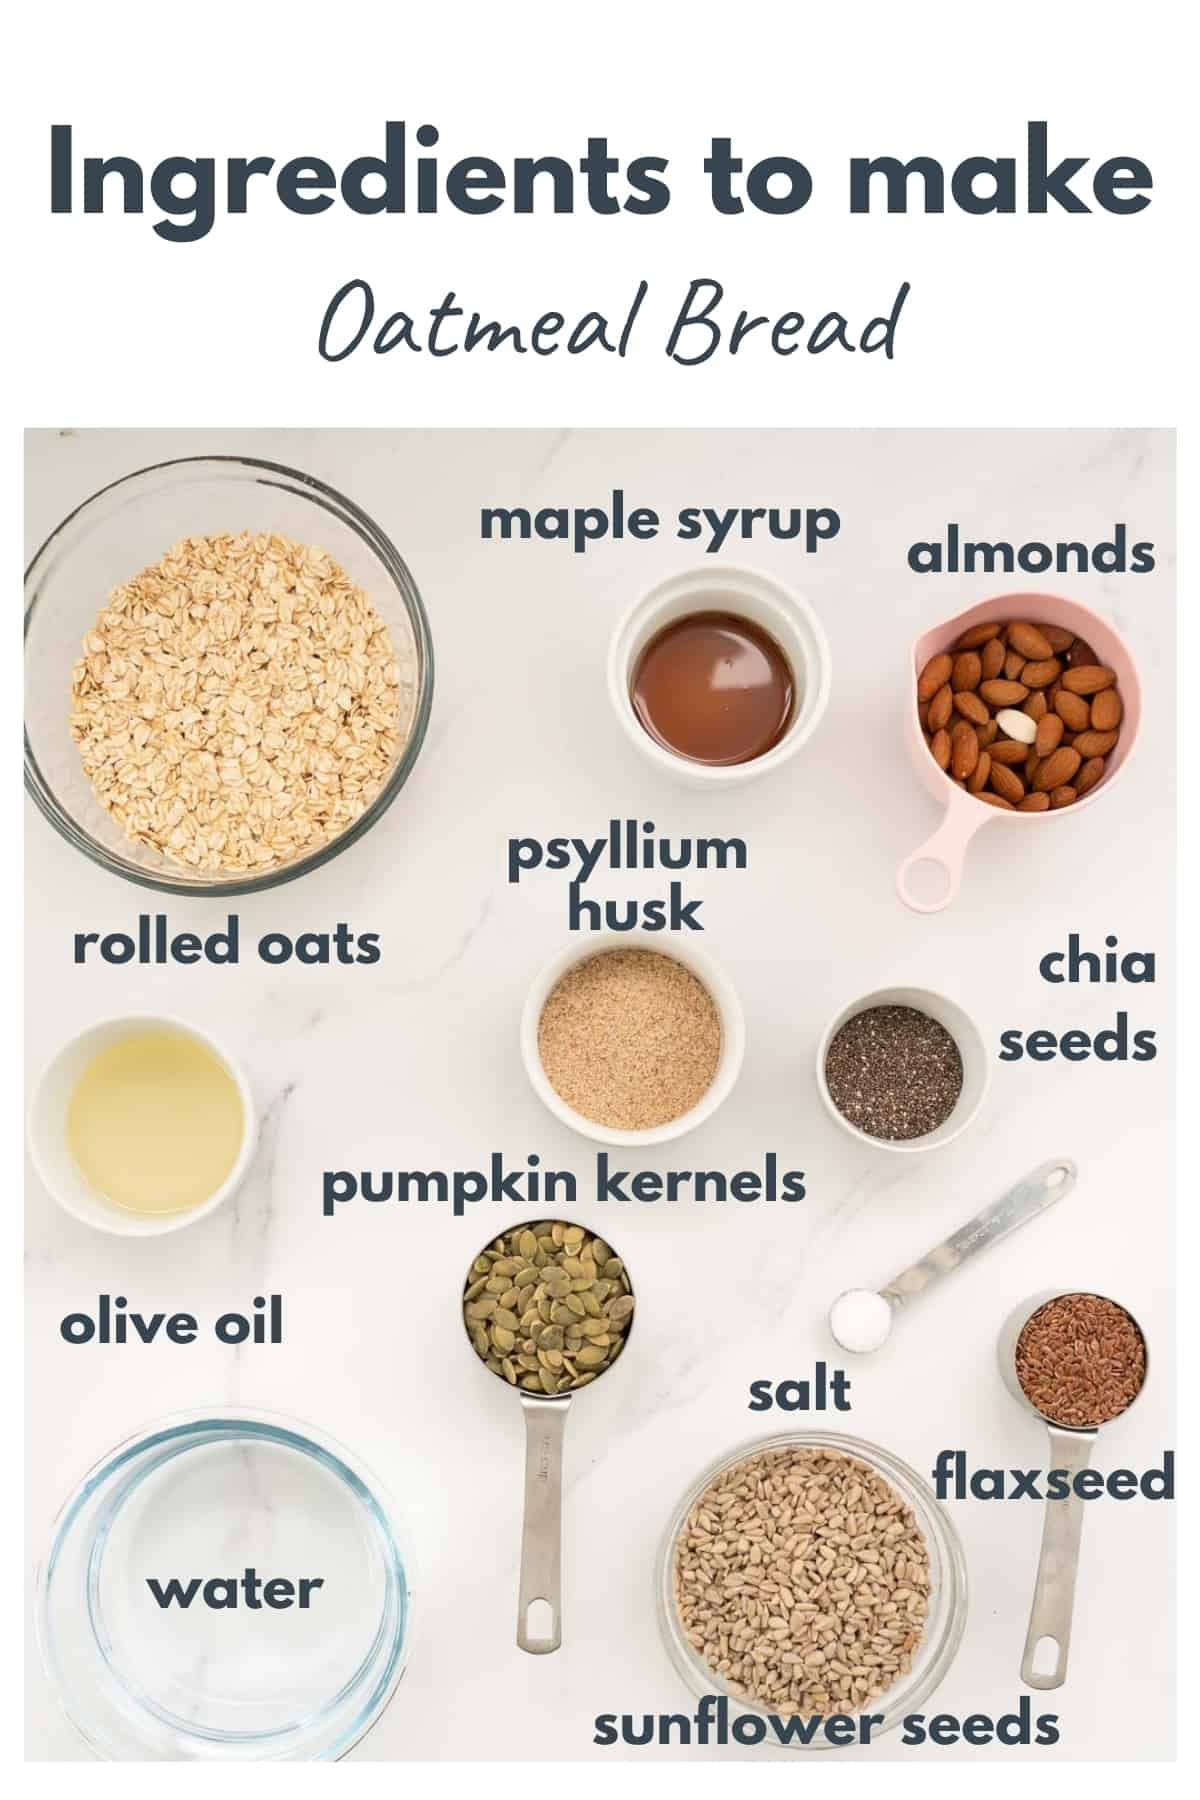 The ingredients to make overnight oatmeal bread laid out on a bench top with text overlay.